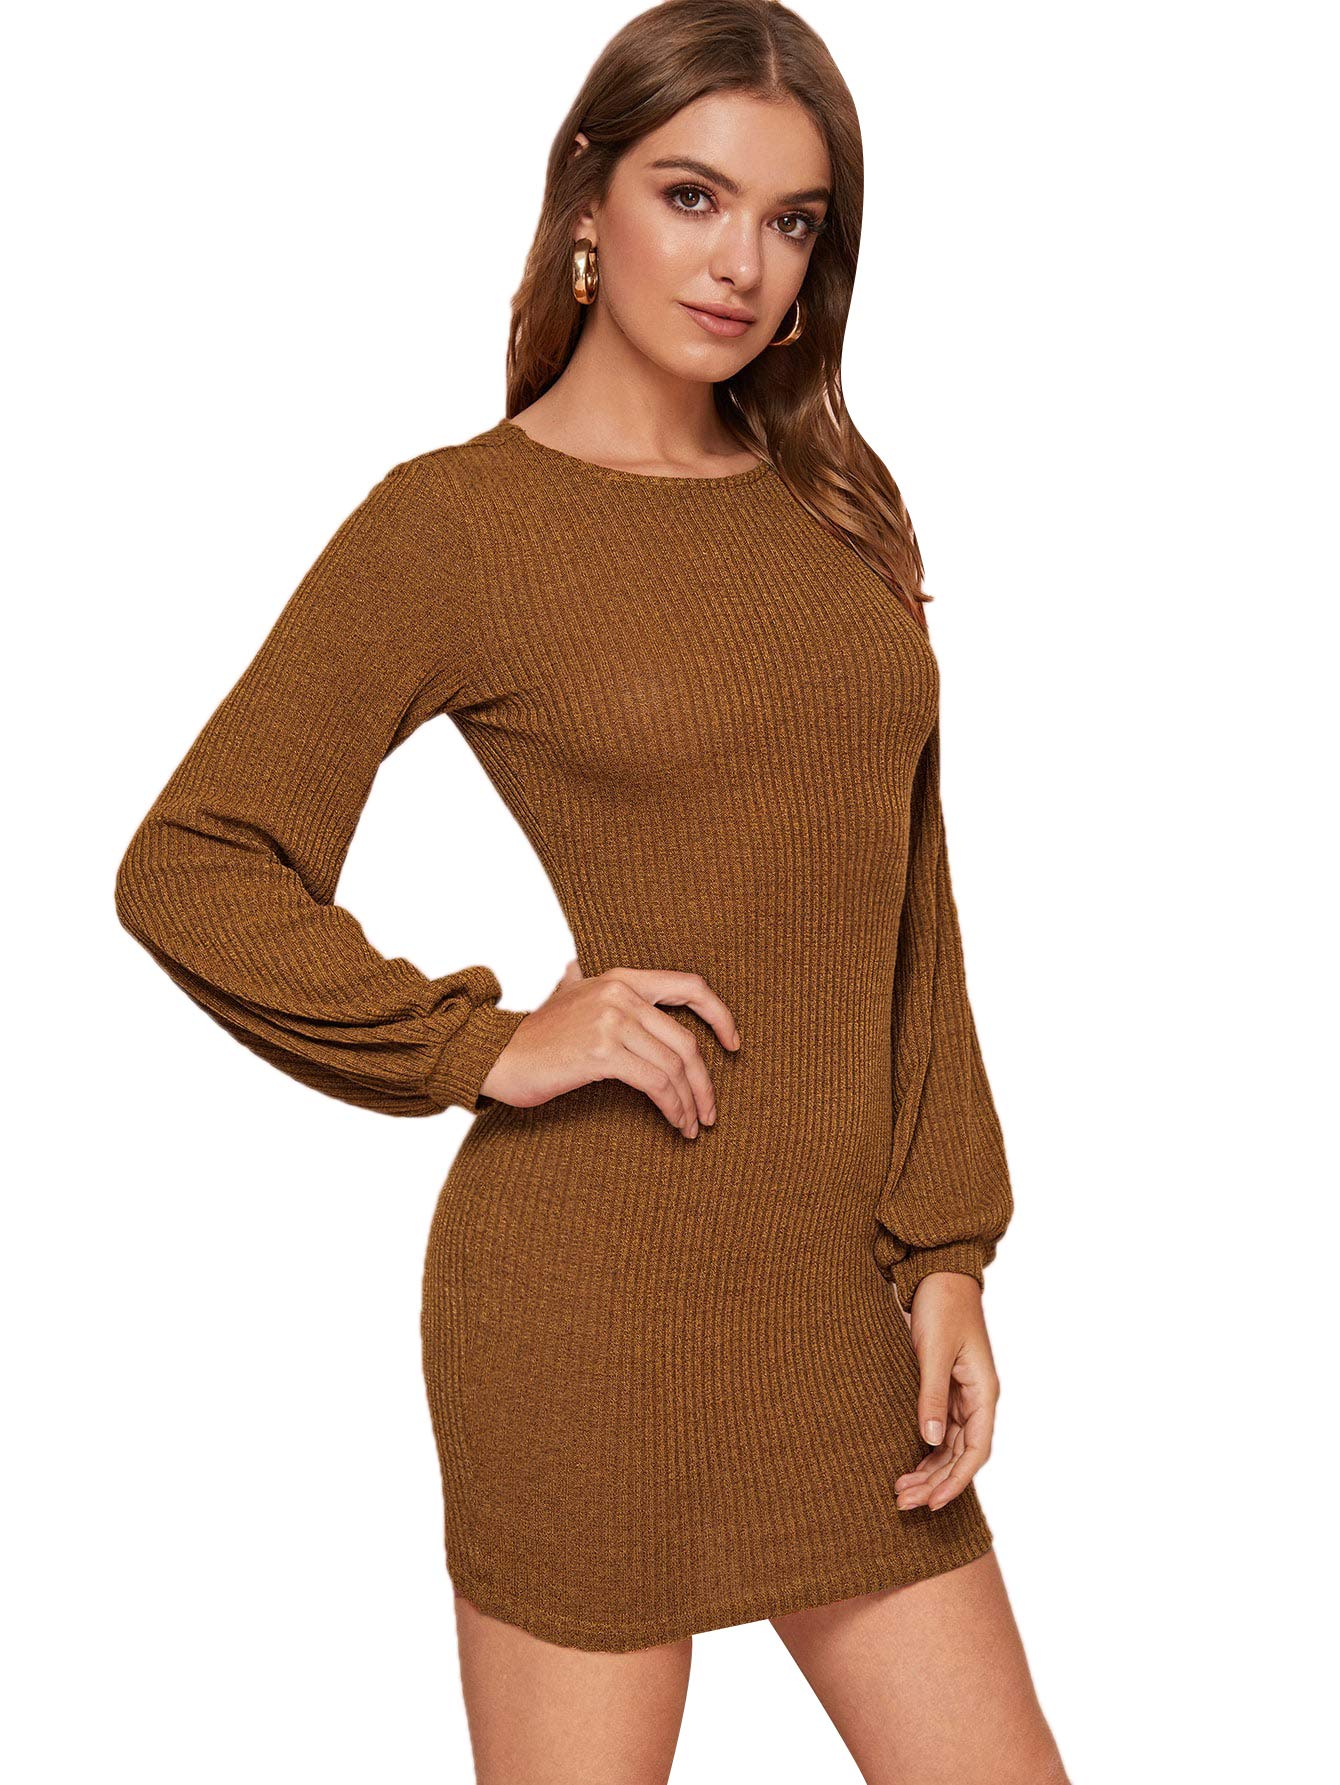 Available at Amazon: Romwe Women's Elegant Rib Knit Lantern Long Sleeve Crew Neck Slim Fit Pencil Bodycon Mini Dress